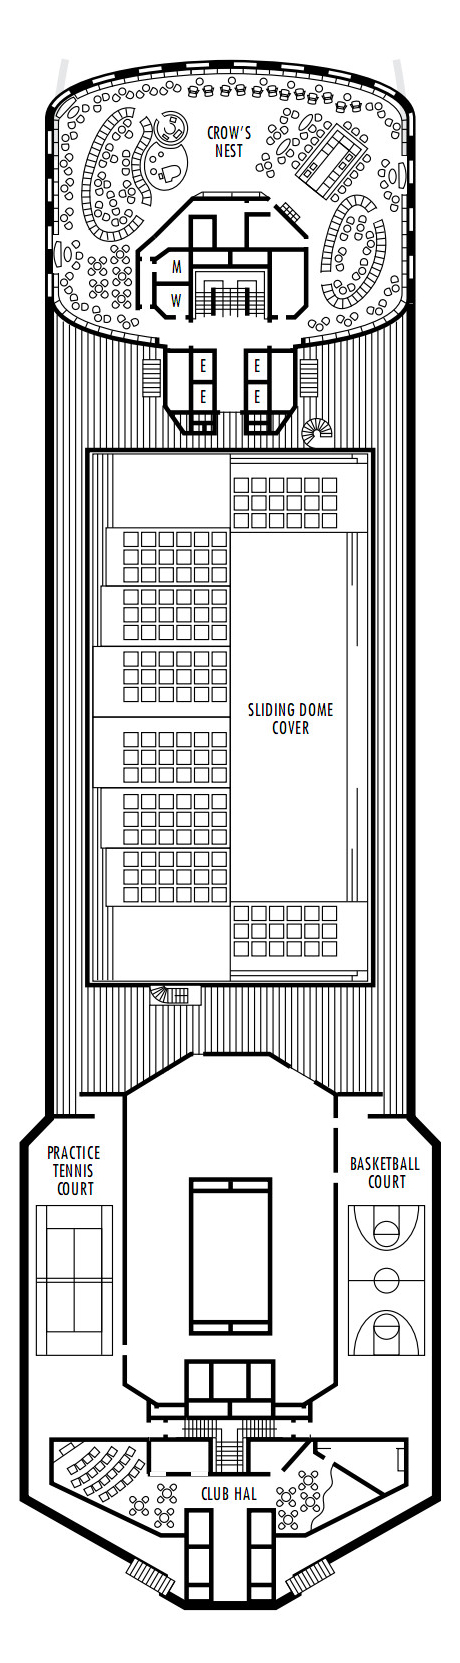 Maasdam Deck 12 - Sports Deck   layout